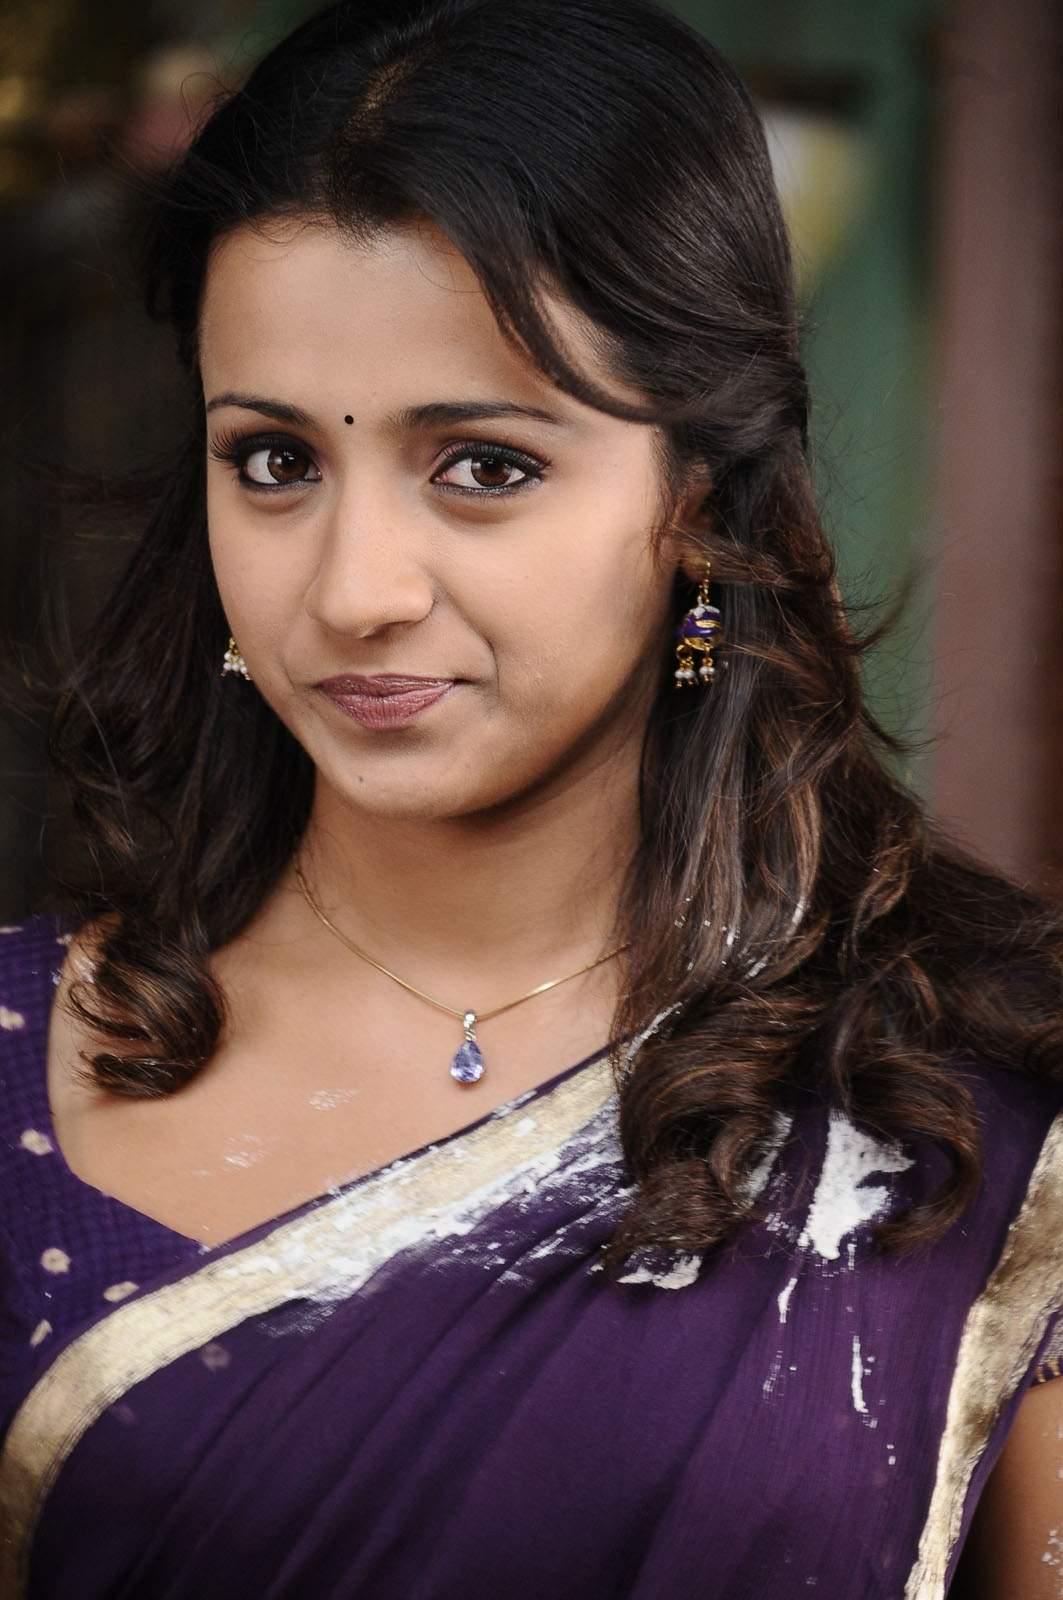 http://4.bp.blogspot.com/-Uh6bZP5B8as/T4kL0unlc7I/AAAAAAAAGbQ/YWOwTnCb1CM/s1600/tollywood-actress-trisha-krishnan-in-saree-high-quality-wallpaper-photos_123actressphotosgallery.com_0.jpg